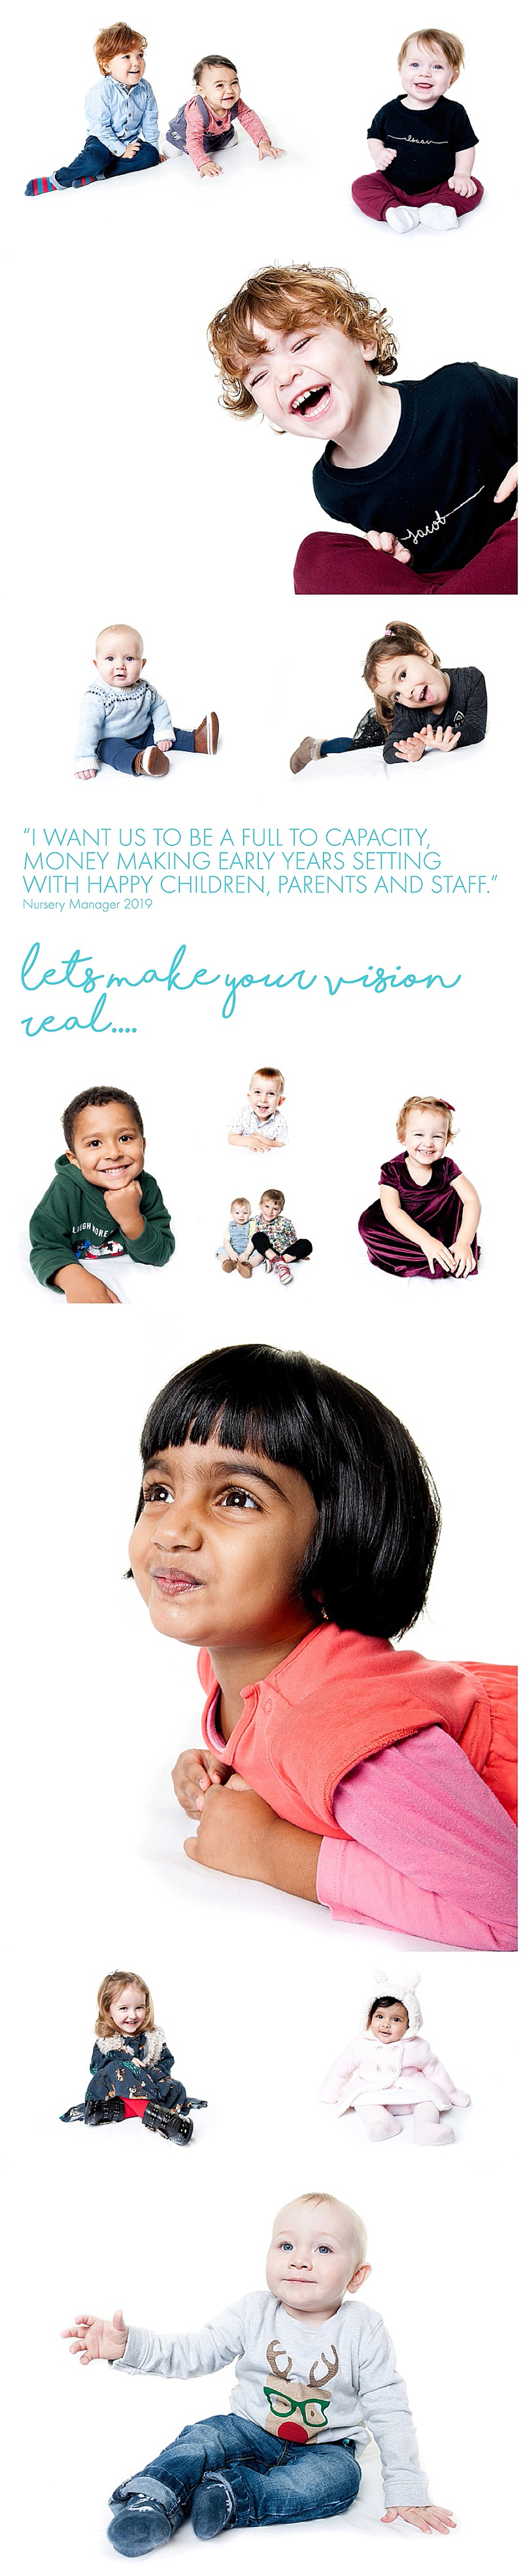 Early Years Photoshoots for Nurseries and Preschools